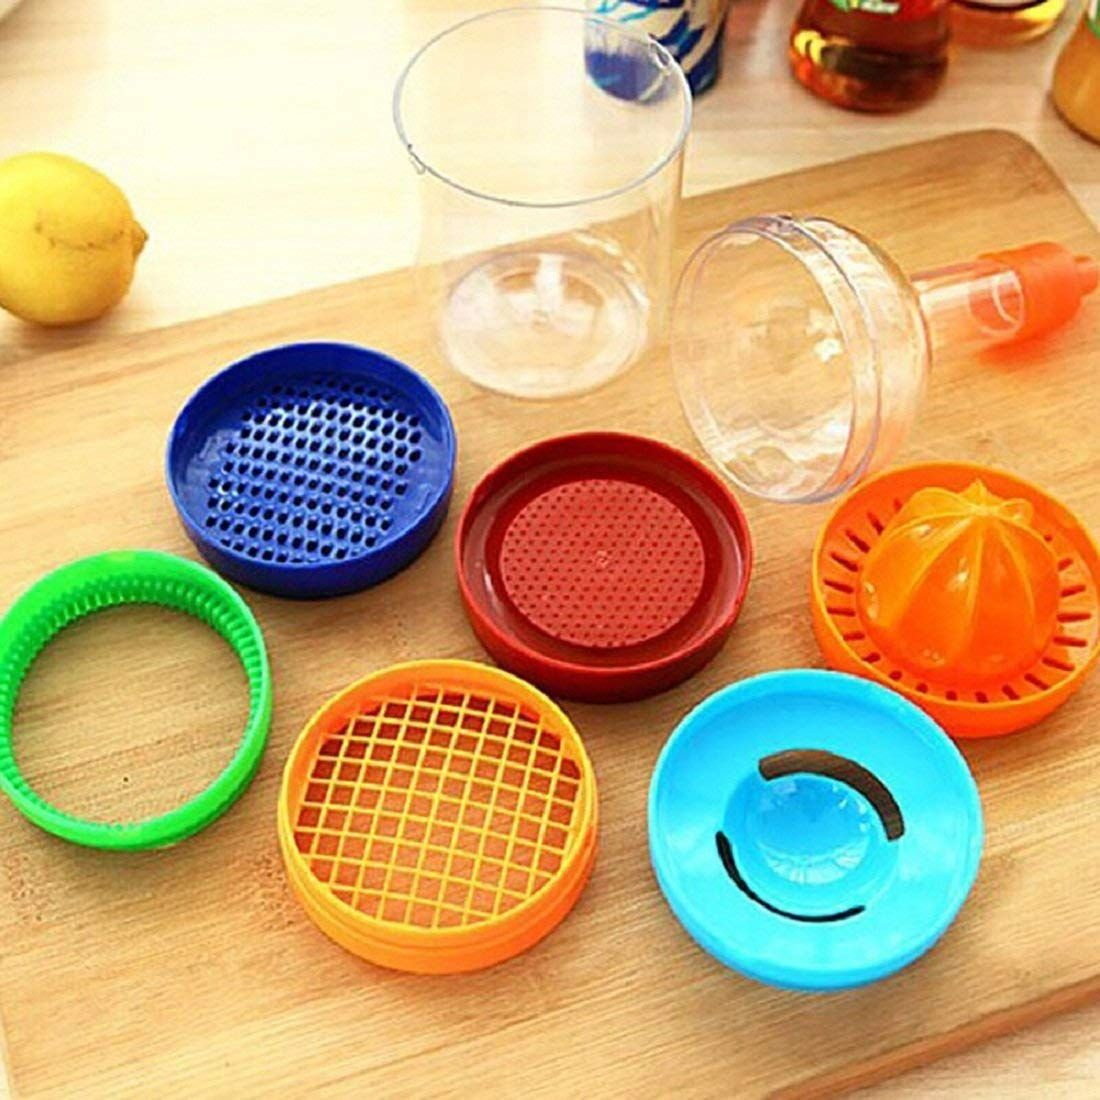 8 in 1 bottle-shaped kitchen tool